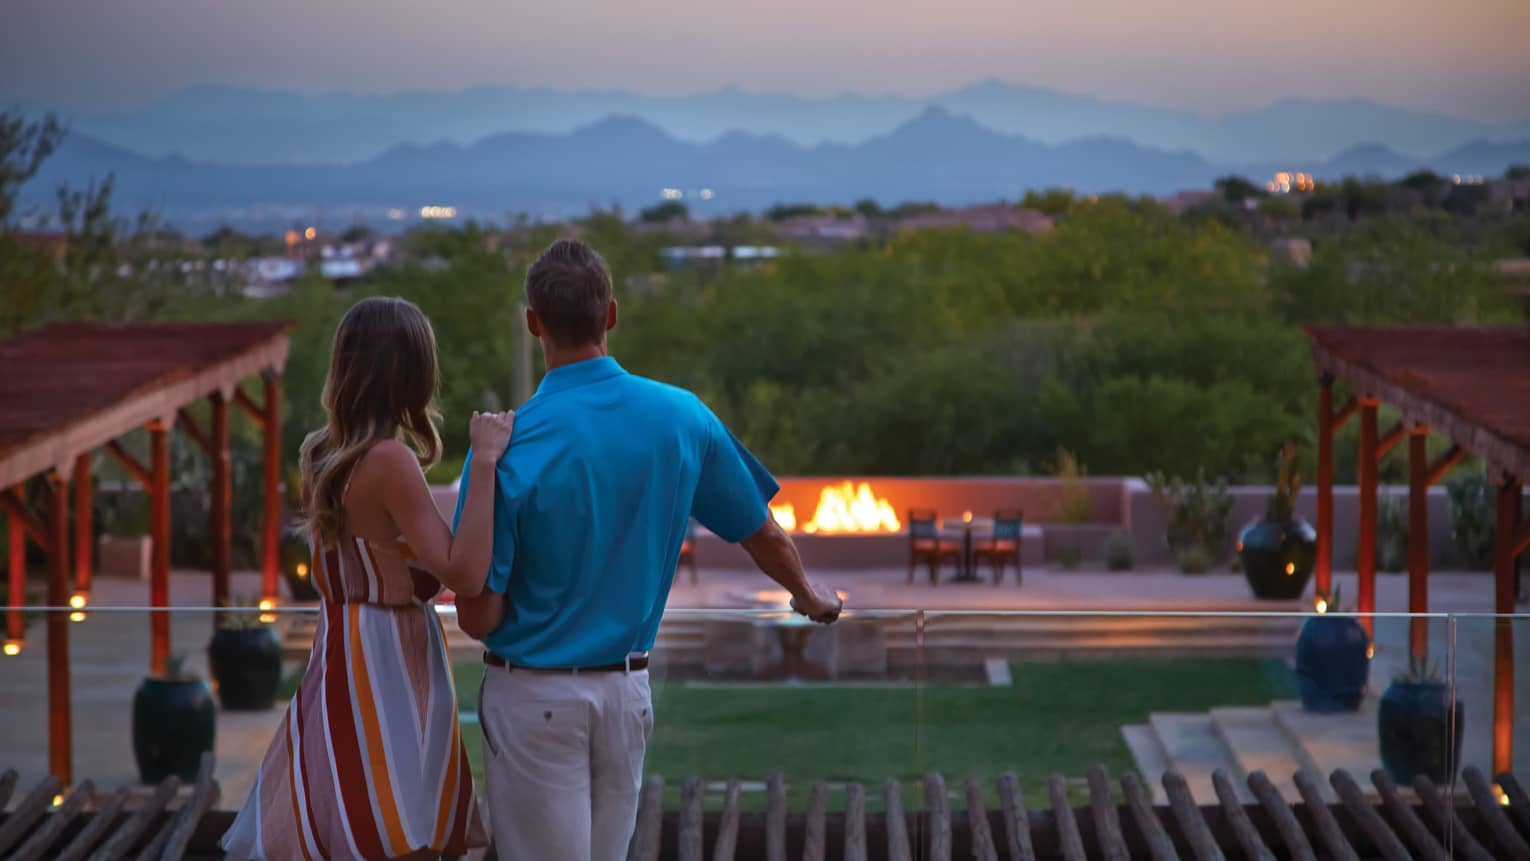 Couple stands at glass balcony overlooking hotel patio, fire pits